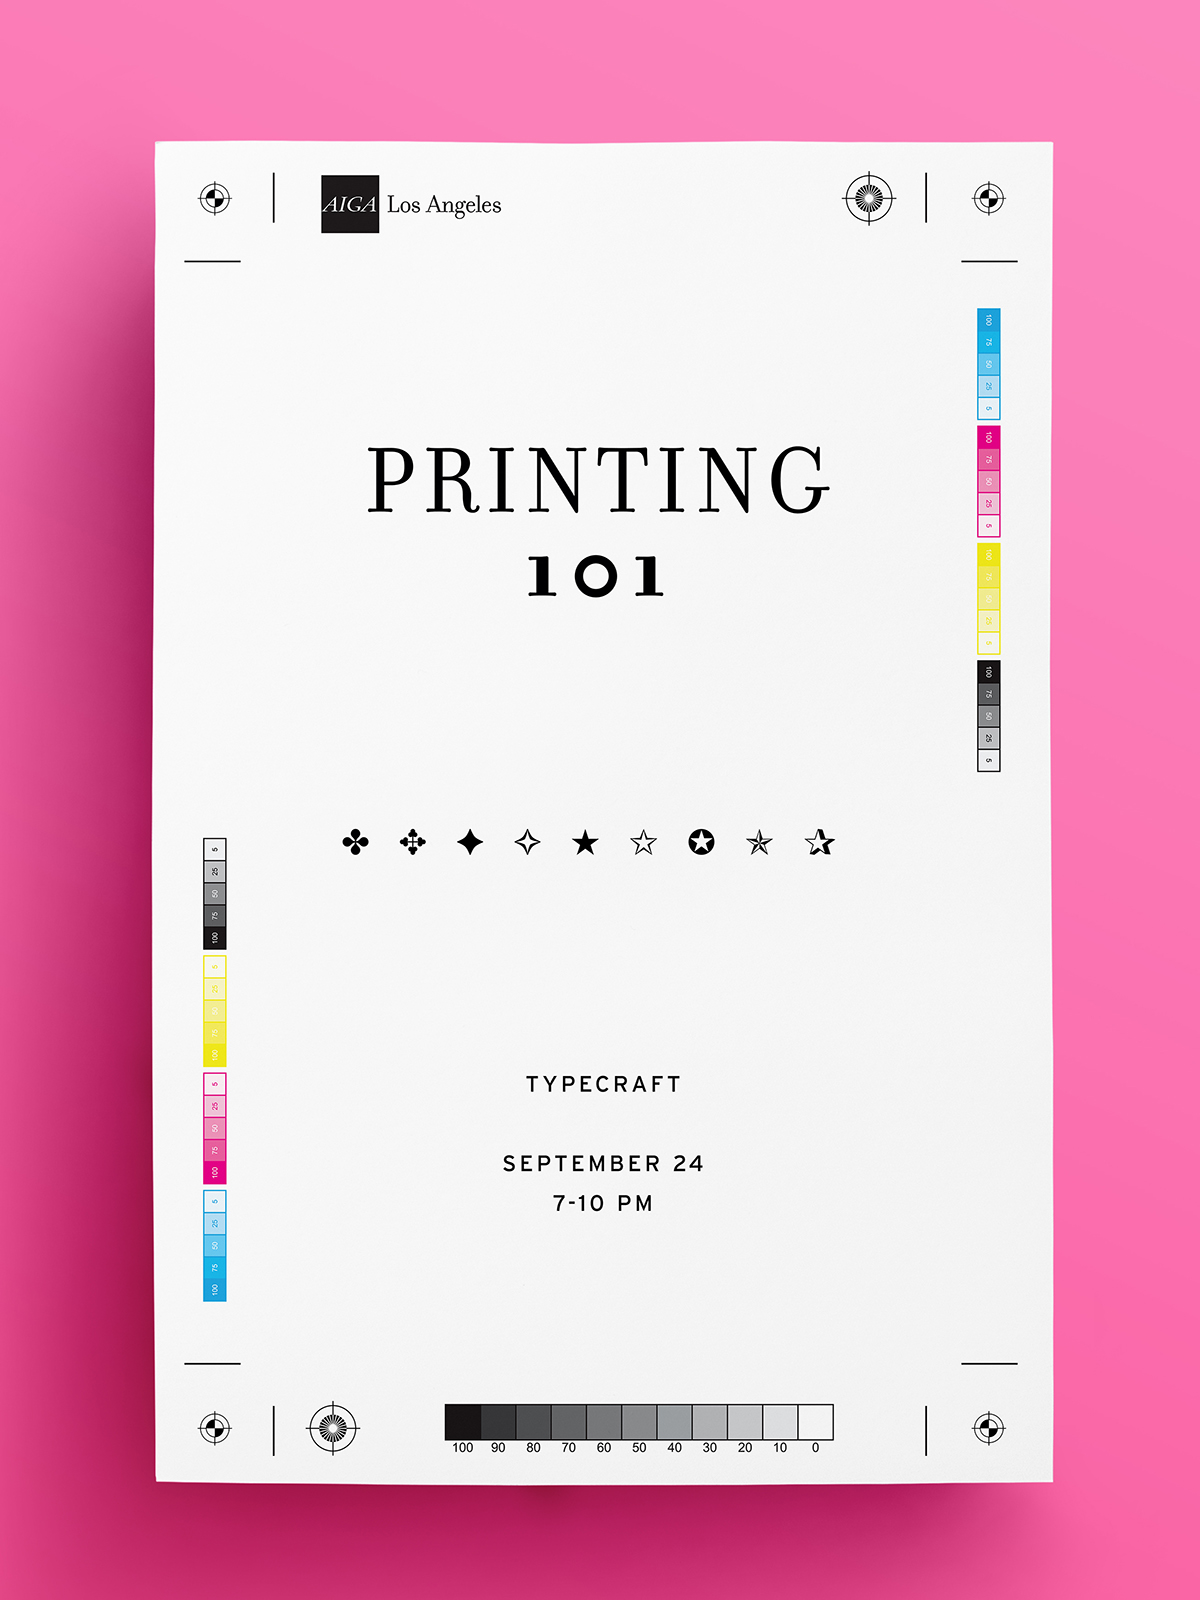 Printing 101 at Typecraft